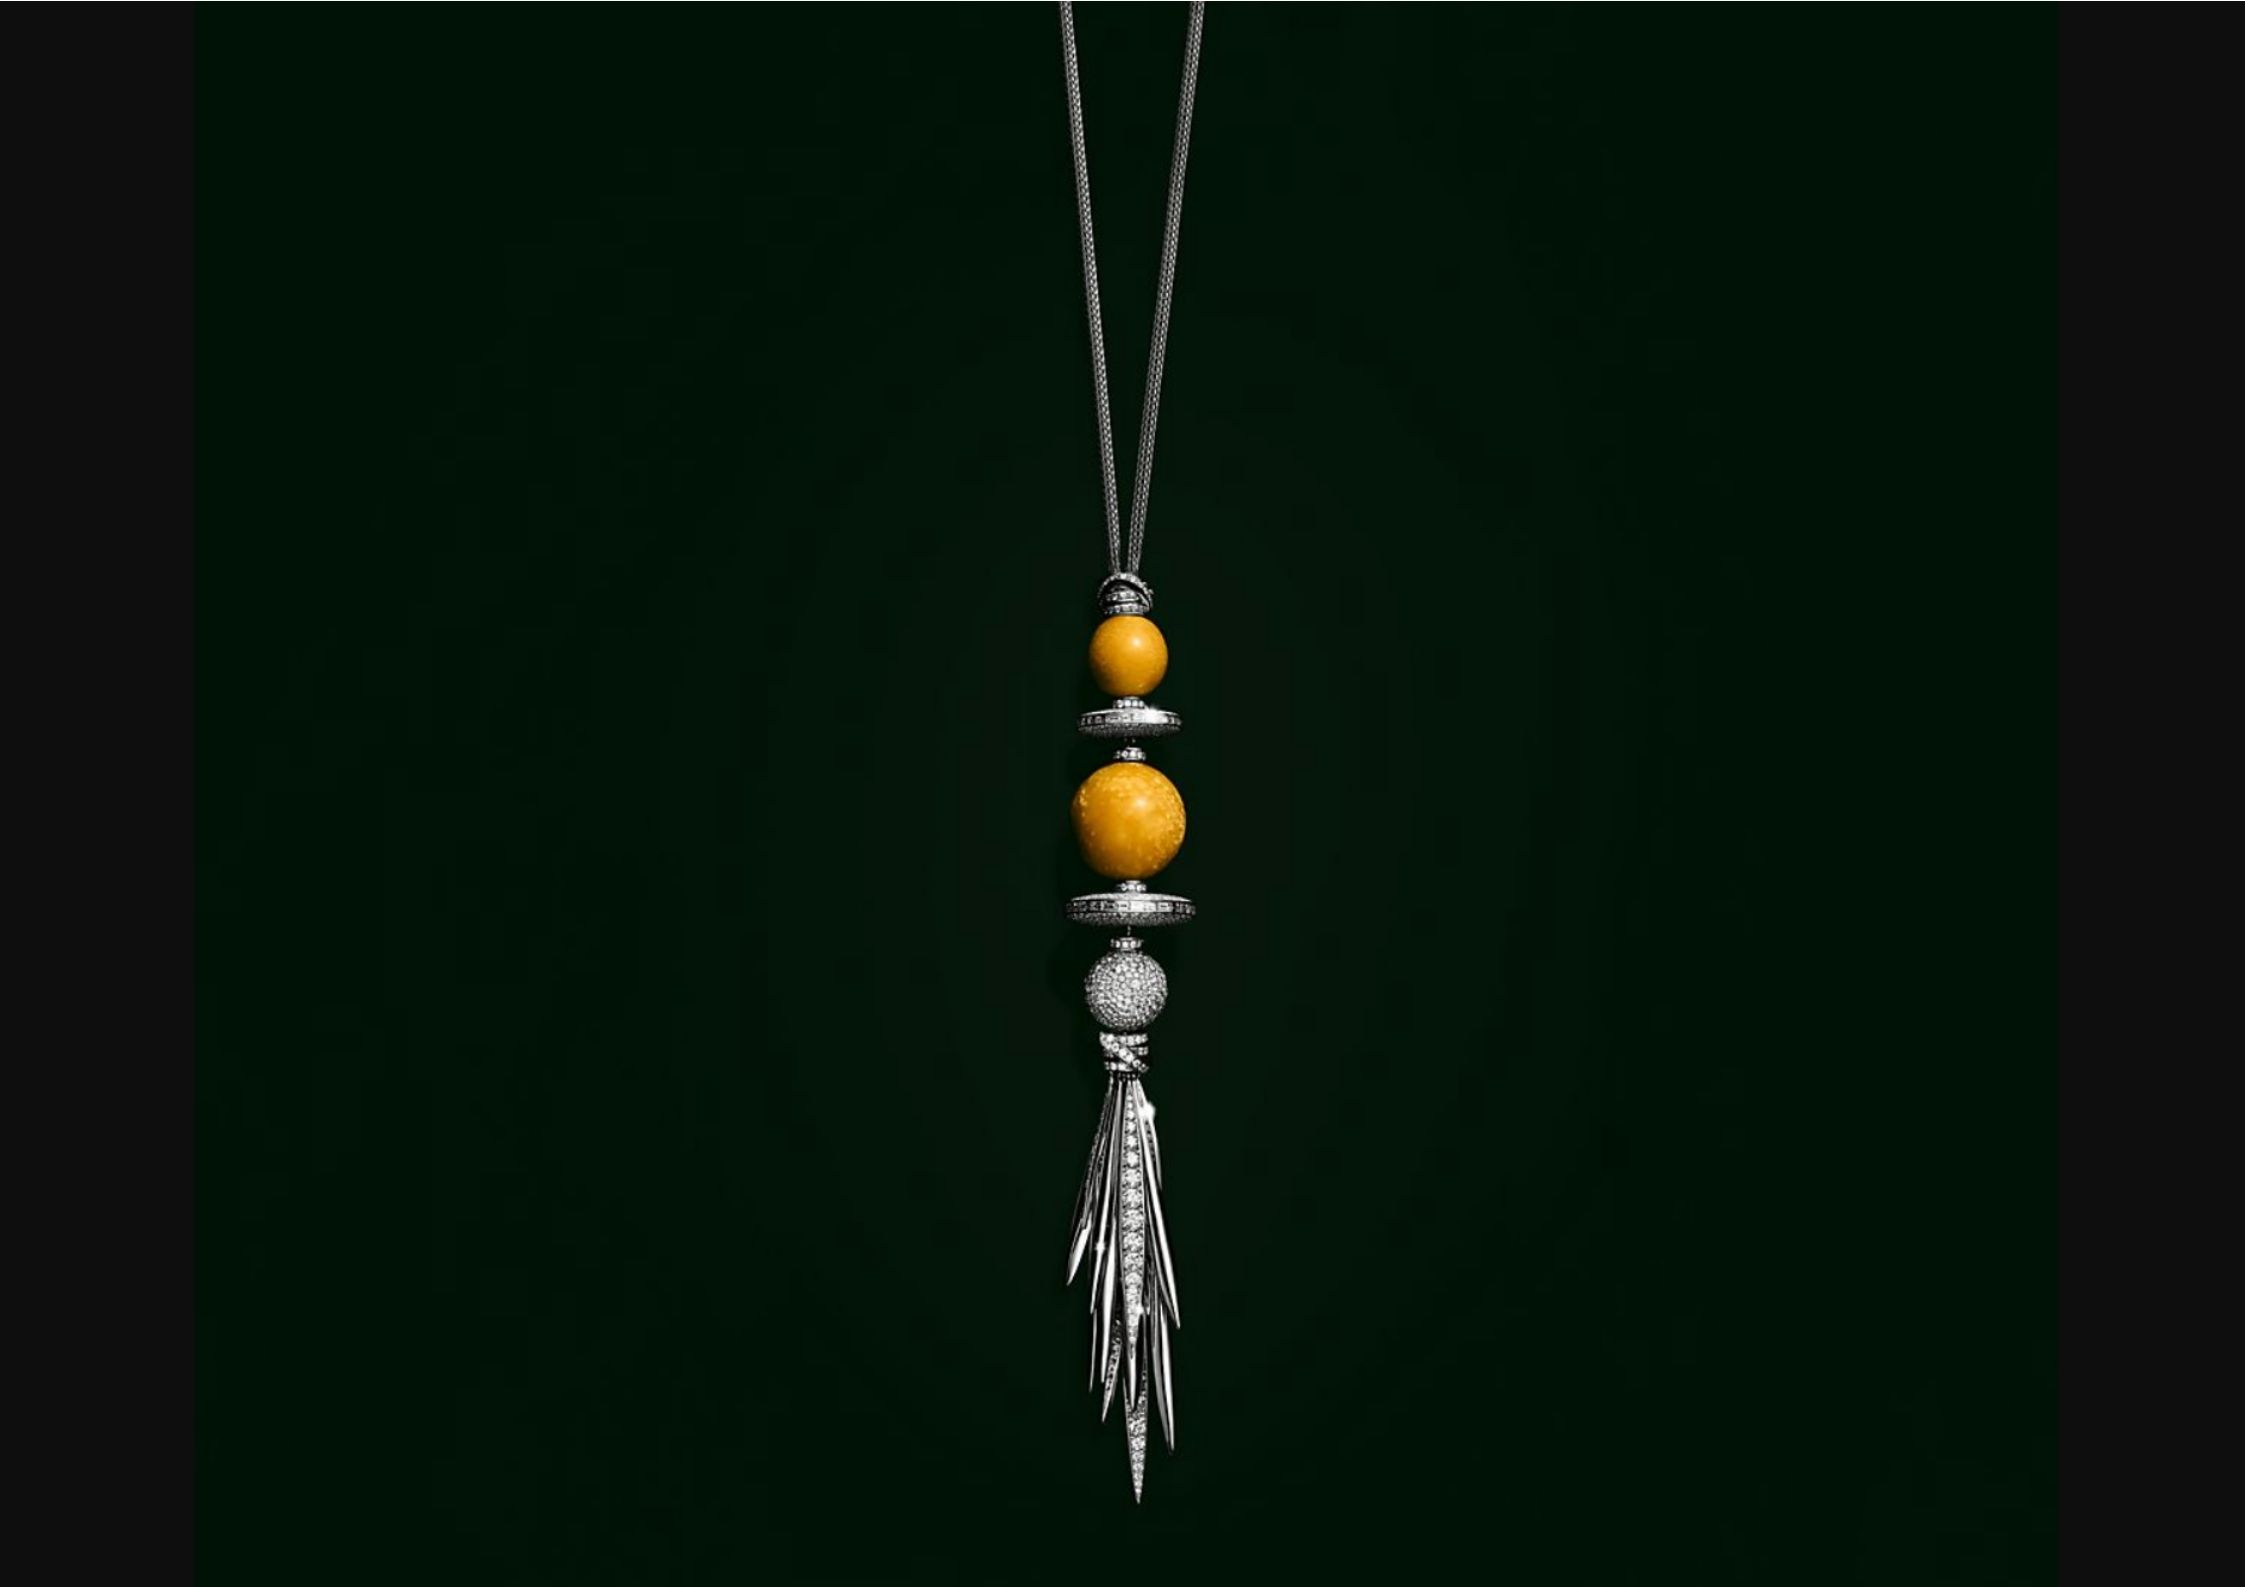 Melo pearl necklace by Tiffany & Co